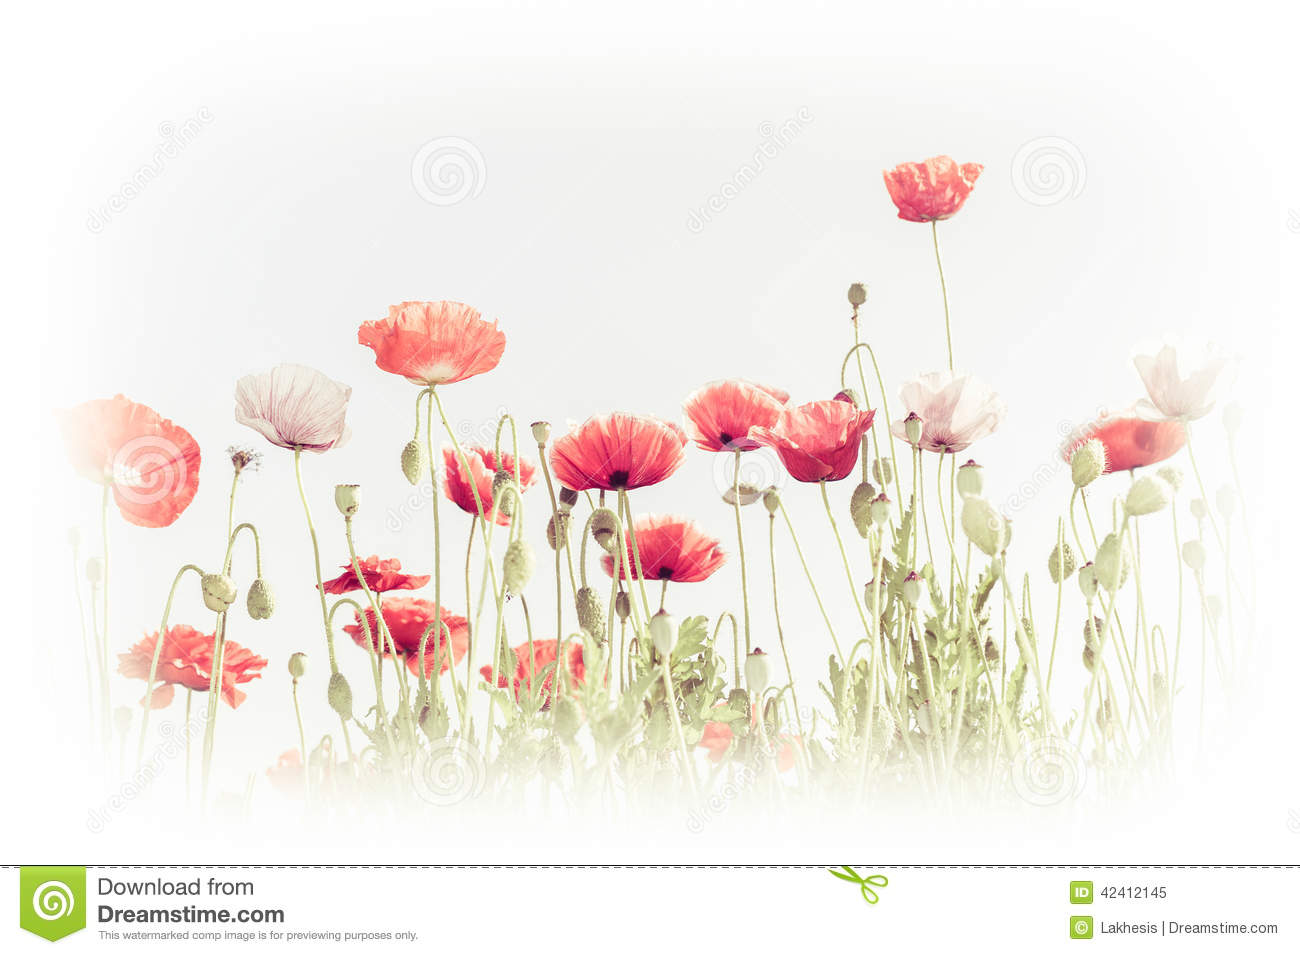 Poppy flower field at night royalty free stock photography image - Wild Poppy Flowers On Summer Meadow Floral Background Royalty Free Stock Photo